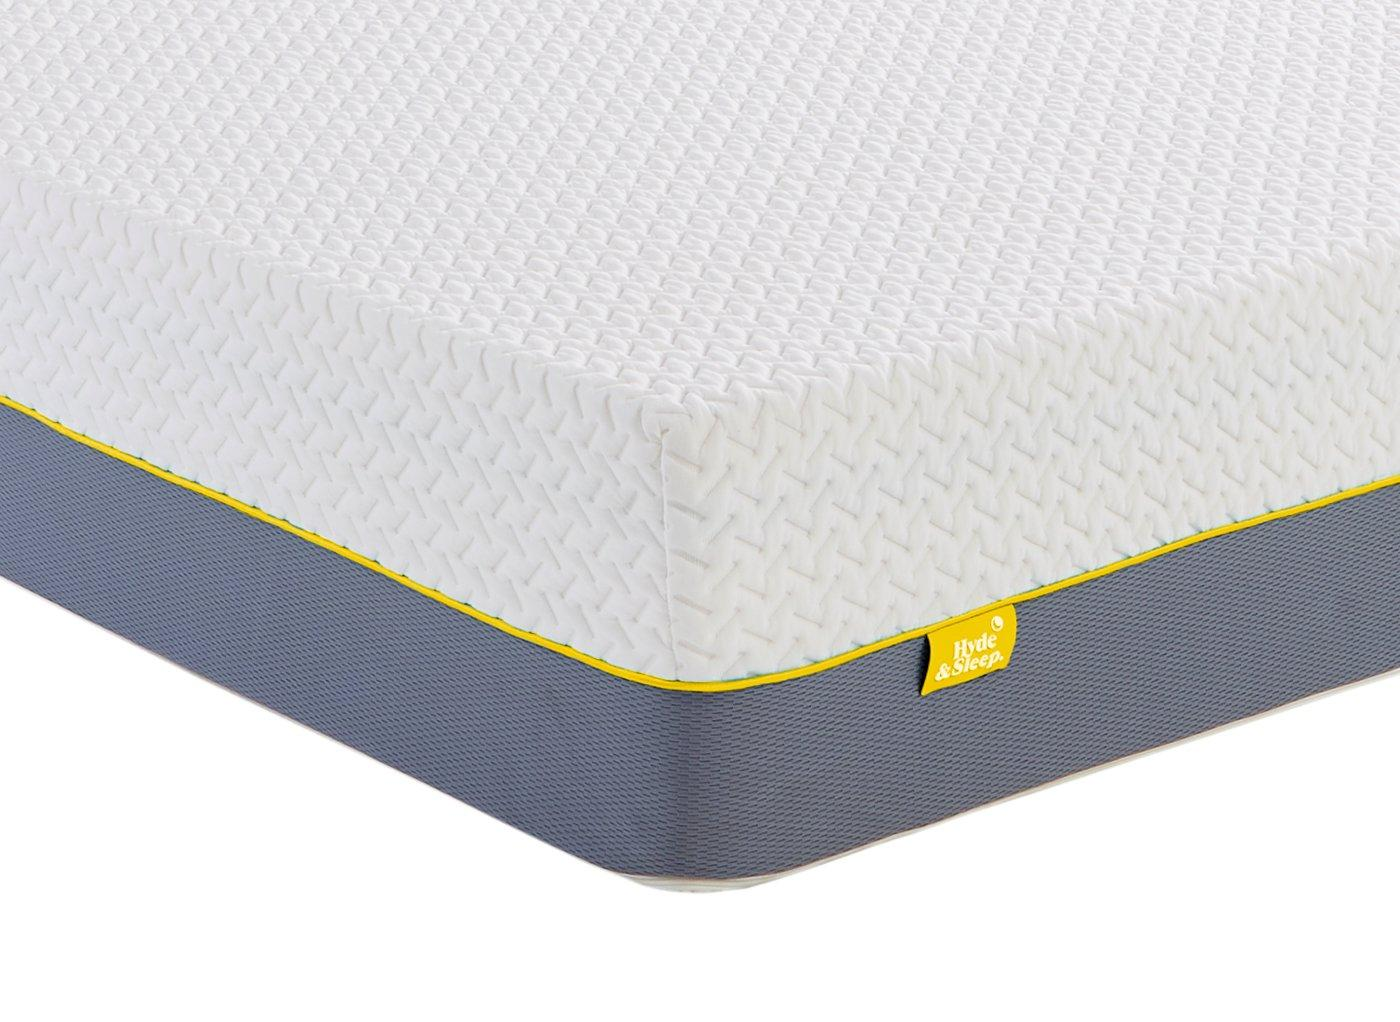 Hyde & Sleep Hybrid Lemon Mattress 4'6 Double